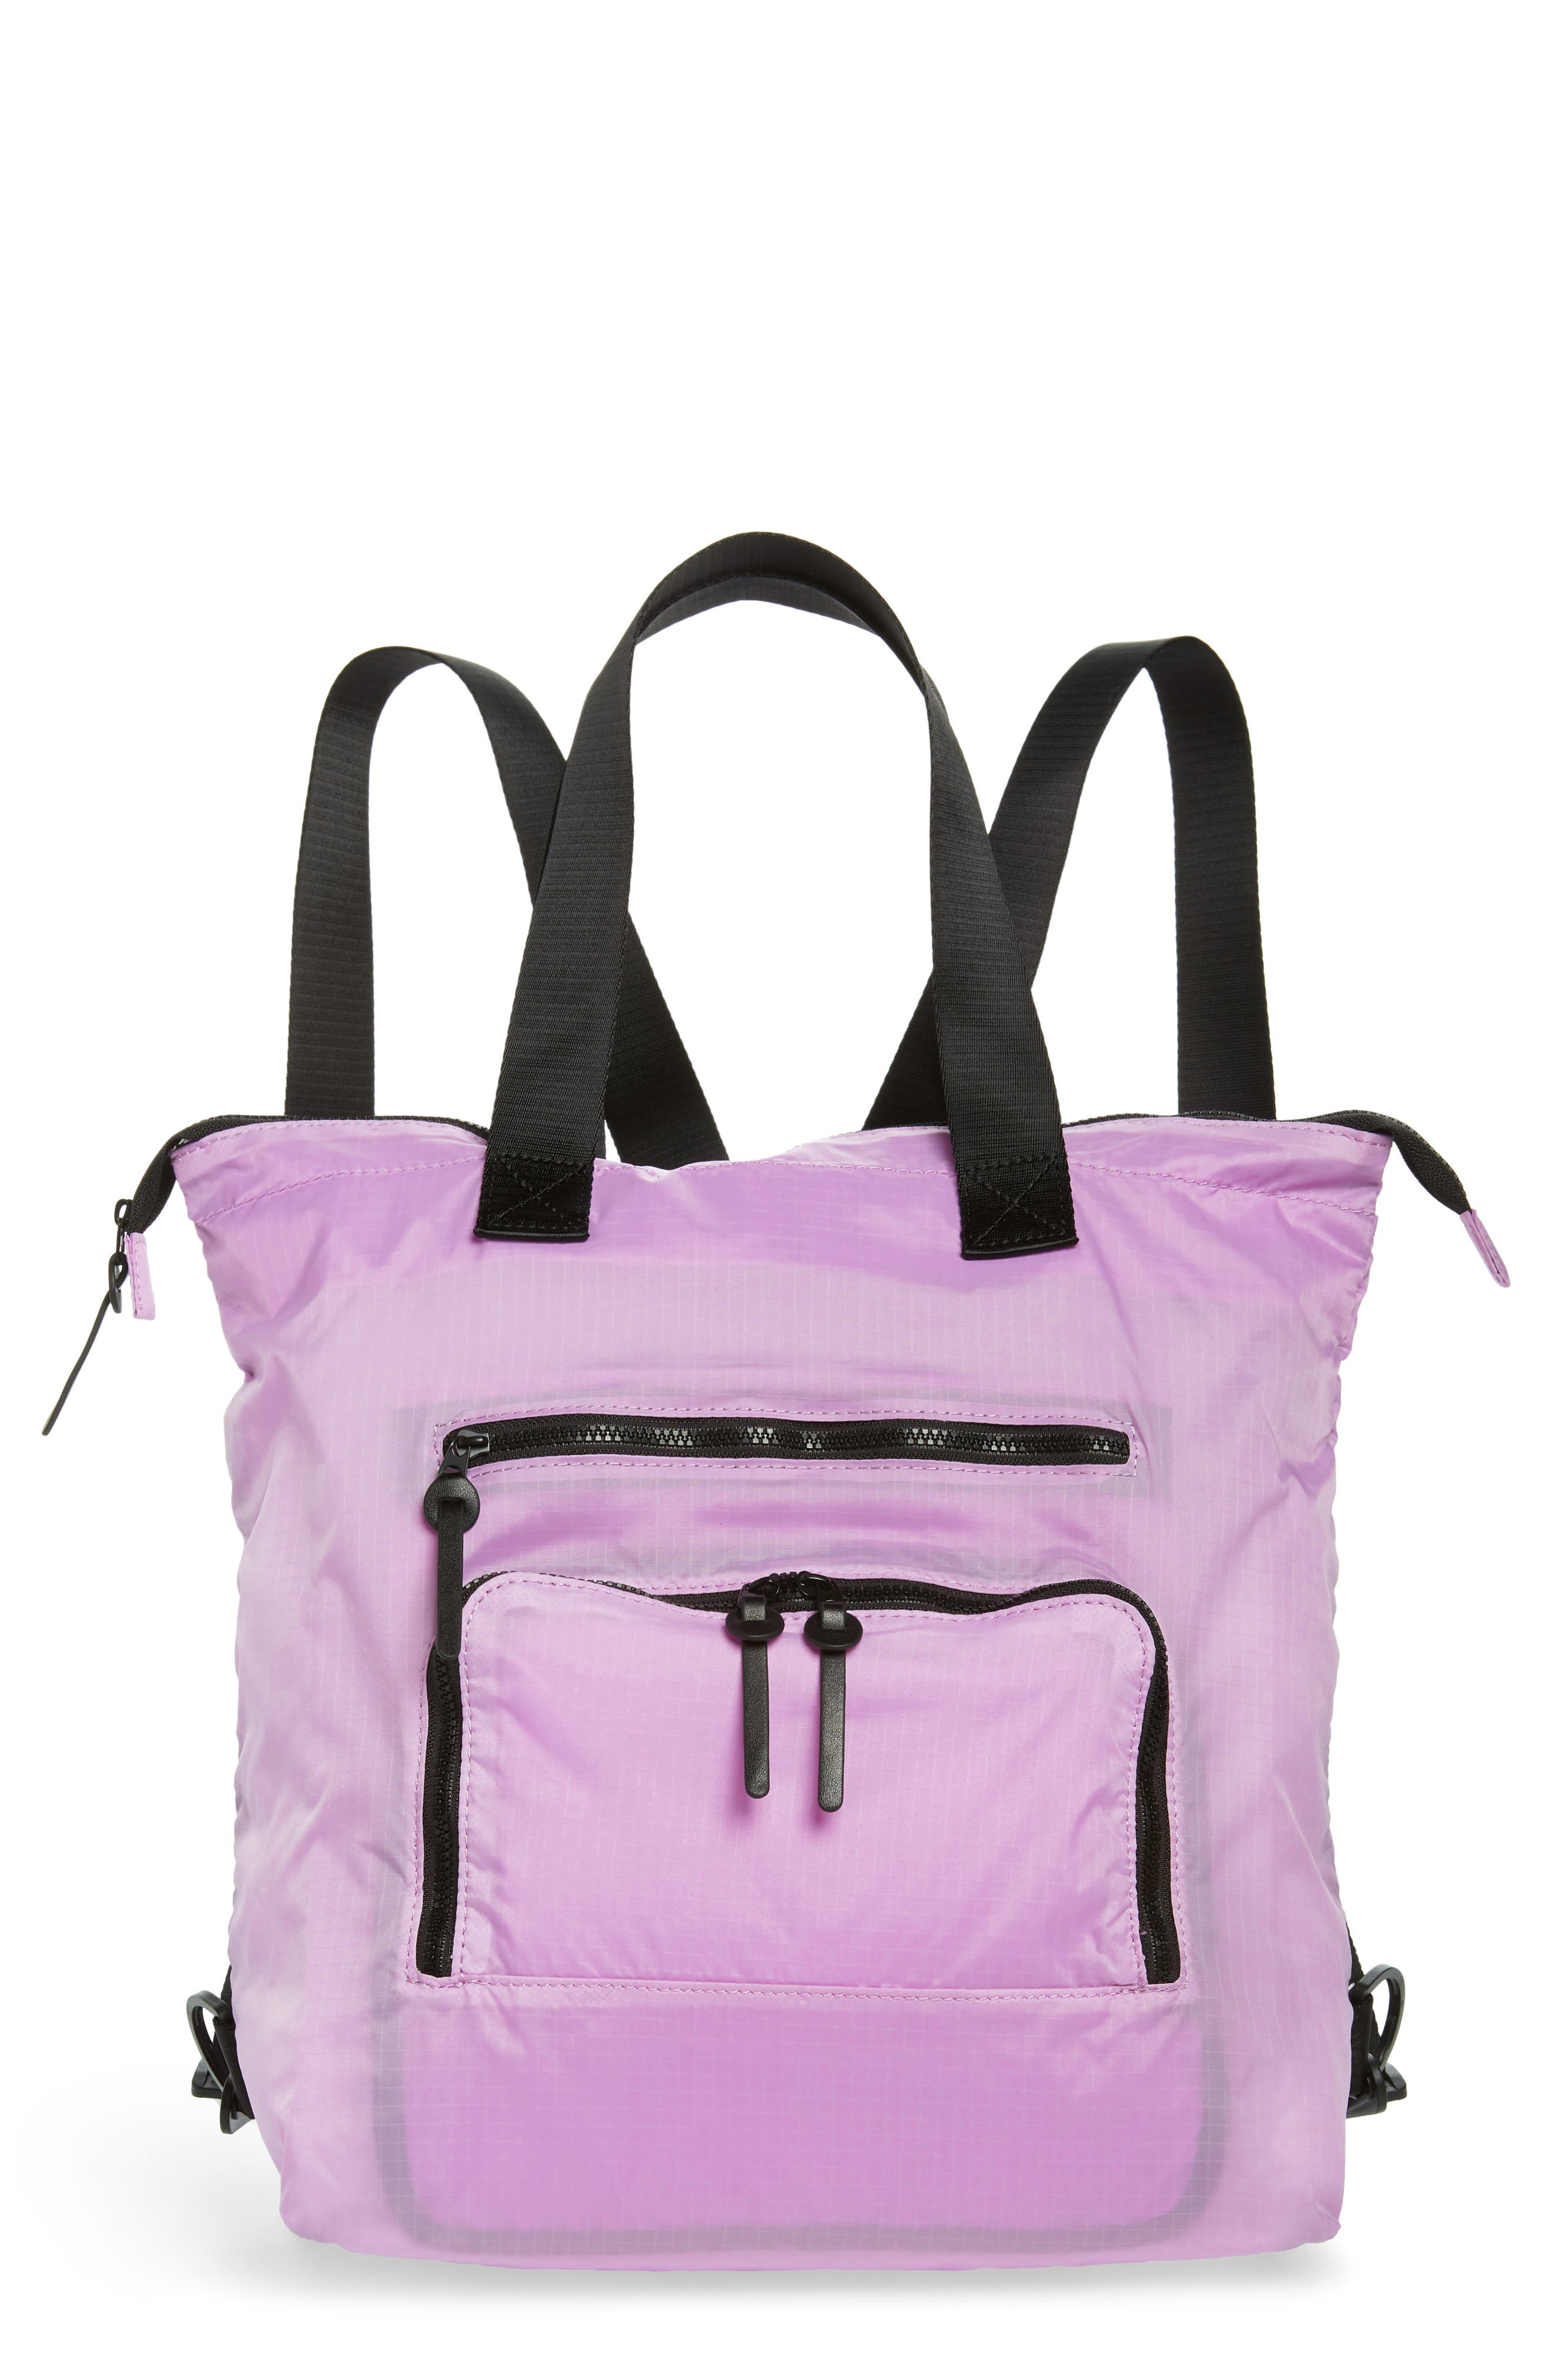 NORDSTROM, Packable Convertible Backpack, Main thumbnail 1, color, 530